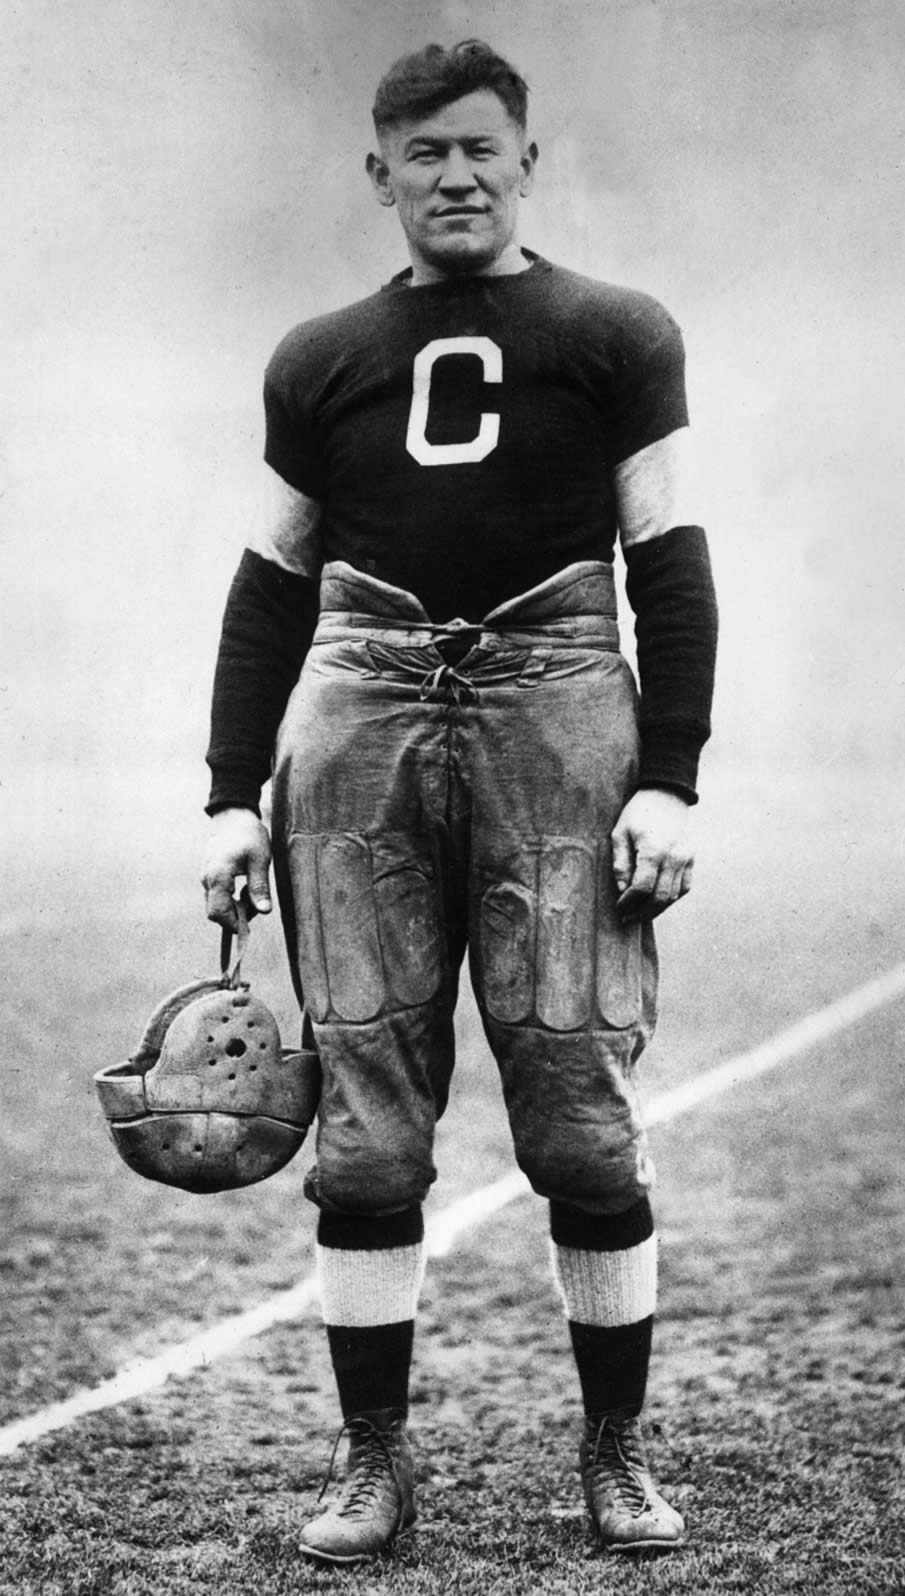 circa 1915:  American athlete Jim Thorpe posing in a football uniform on a field.